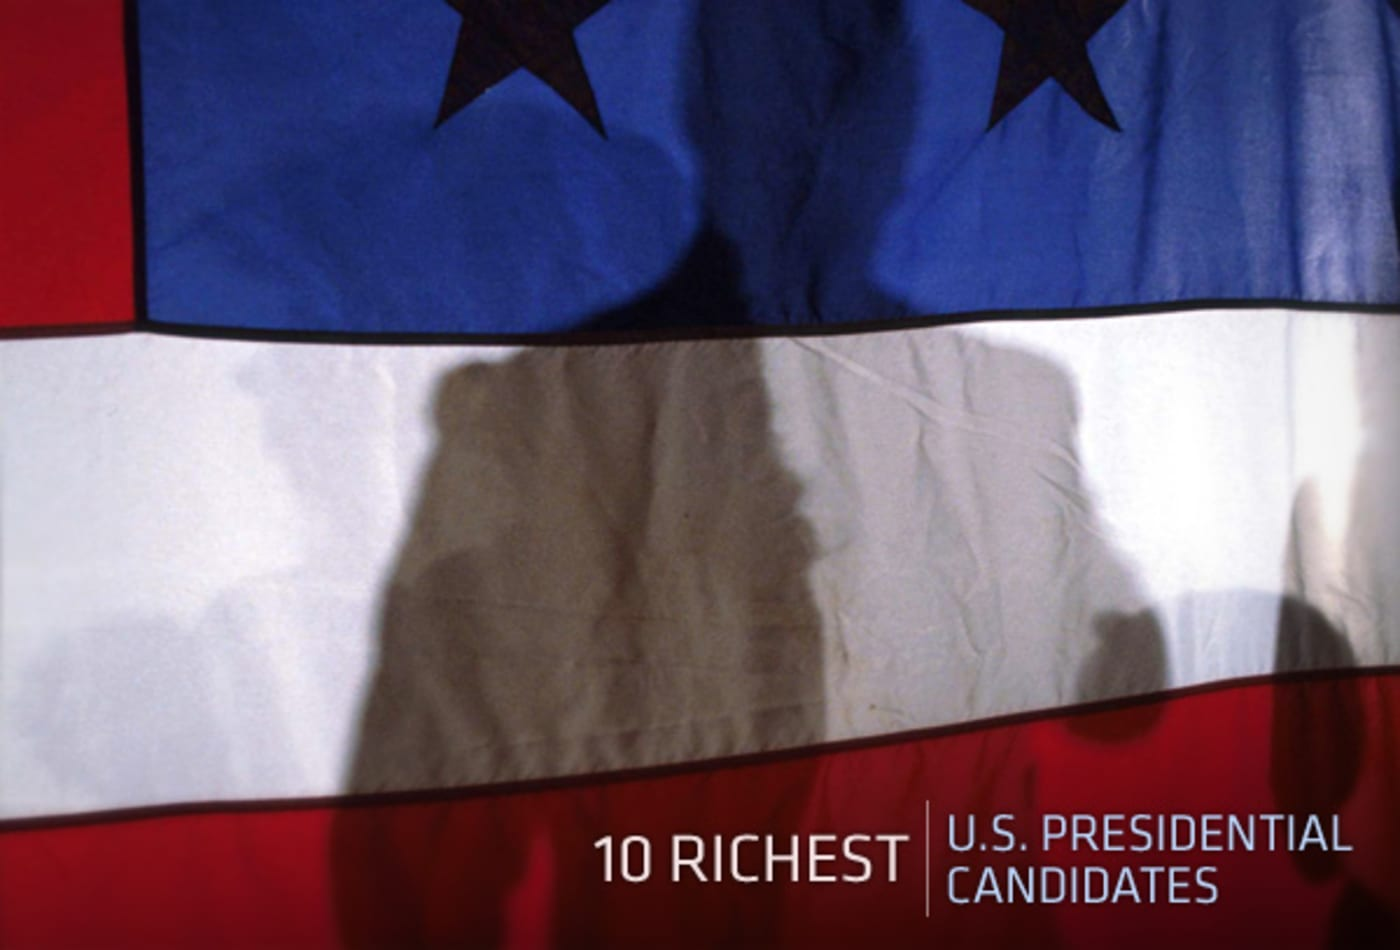 Richest-Presidential-Candidates-Cover.jpg